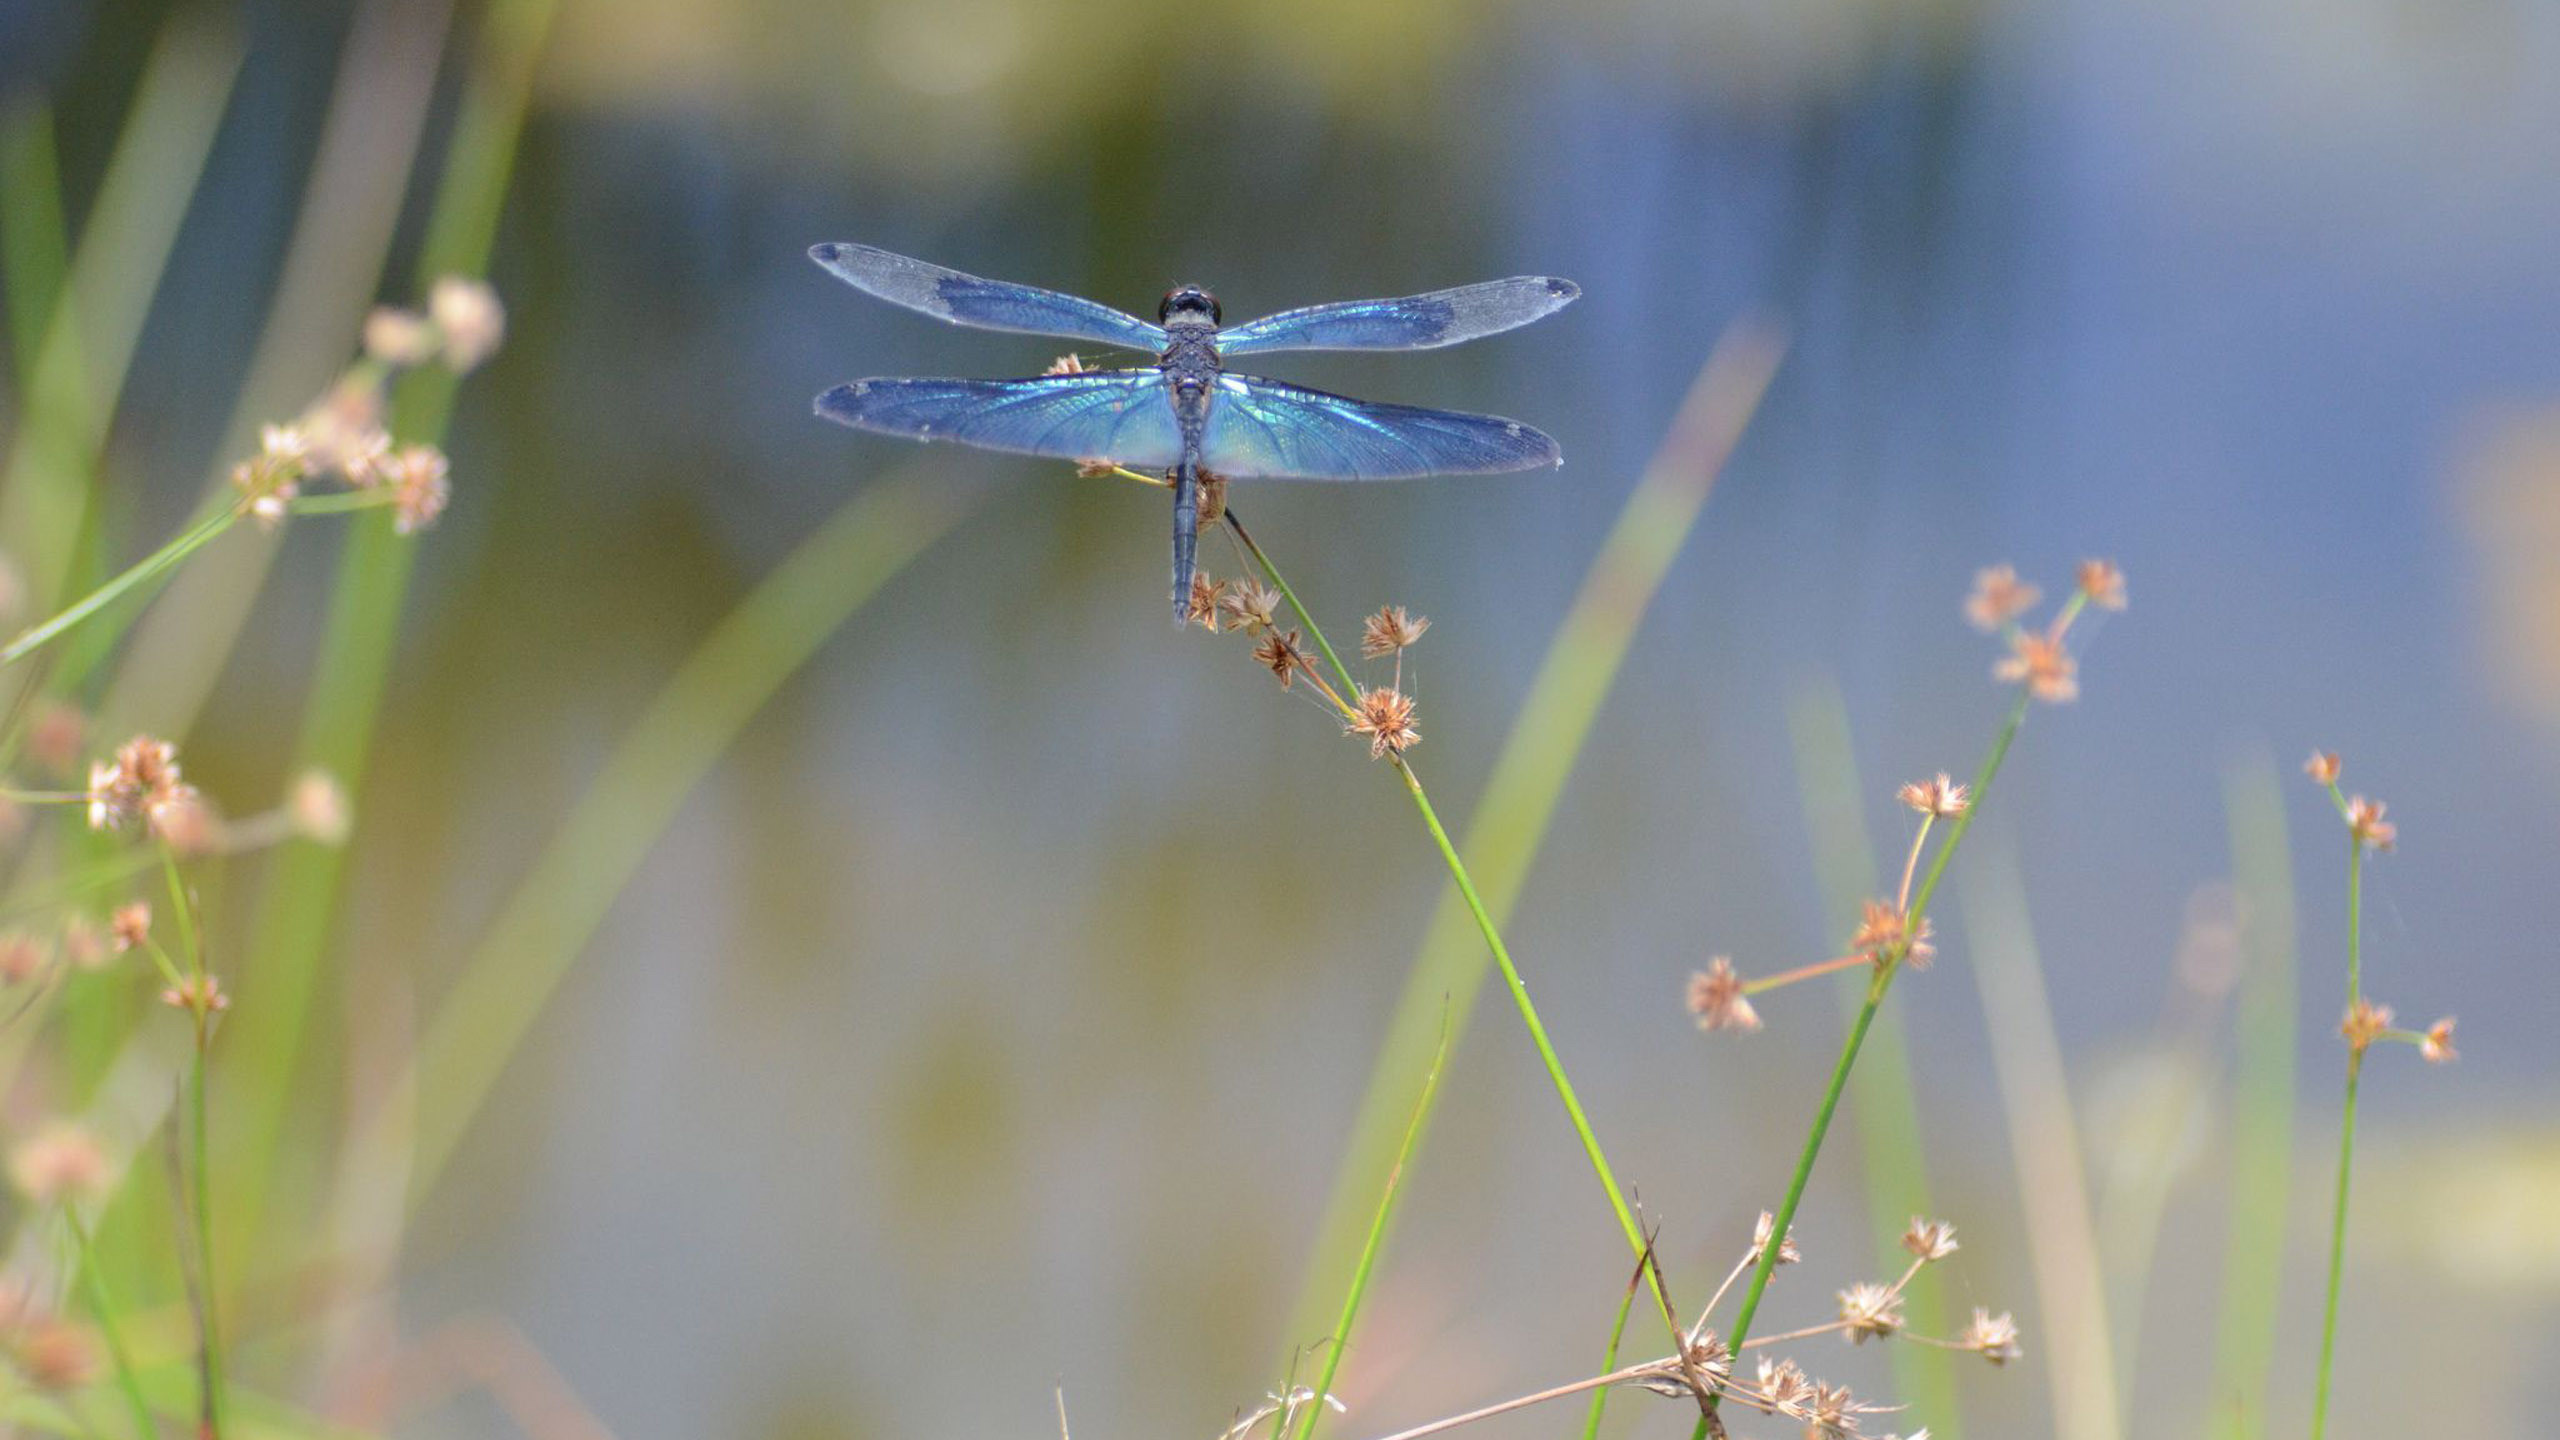 Free Dragonfly Wallpaper Animals Town 2560×1440 Dragonfly Pictures  Wallpapers (52 Wallpapers) |